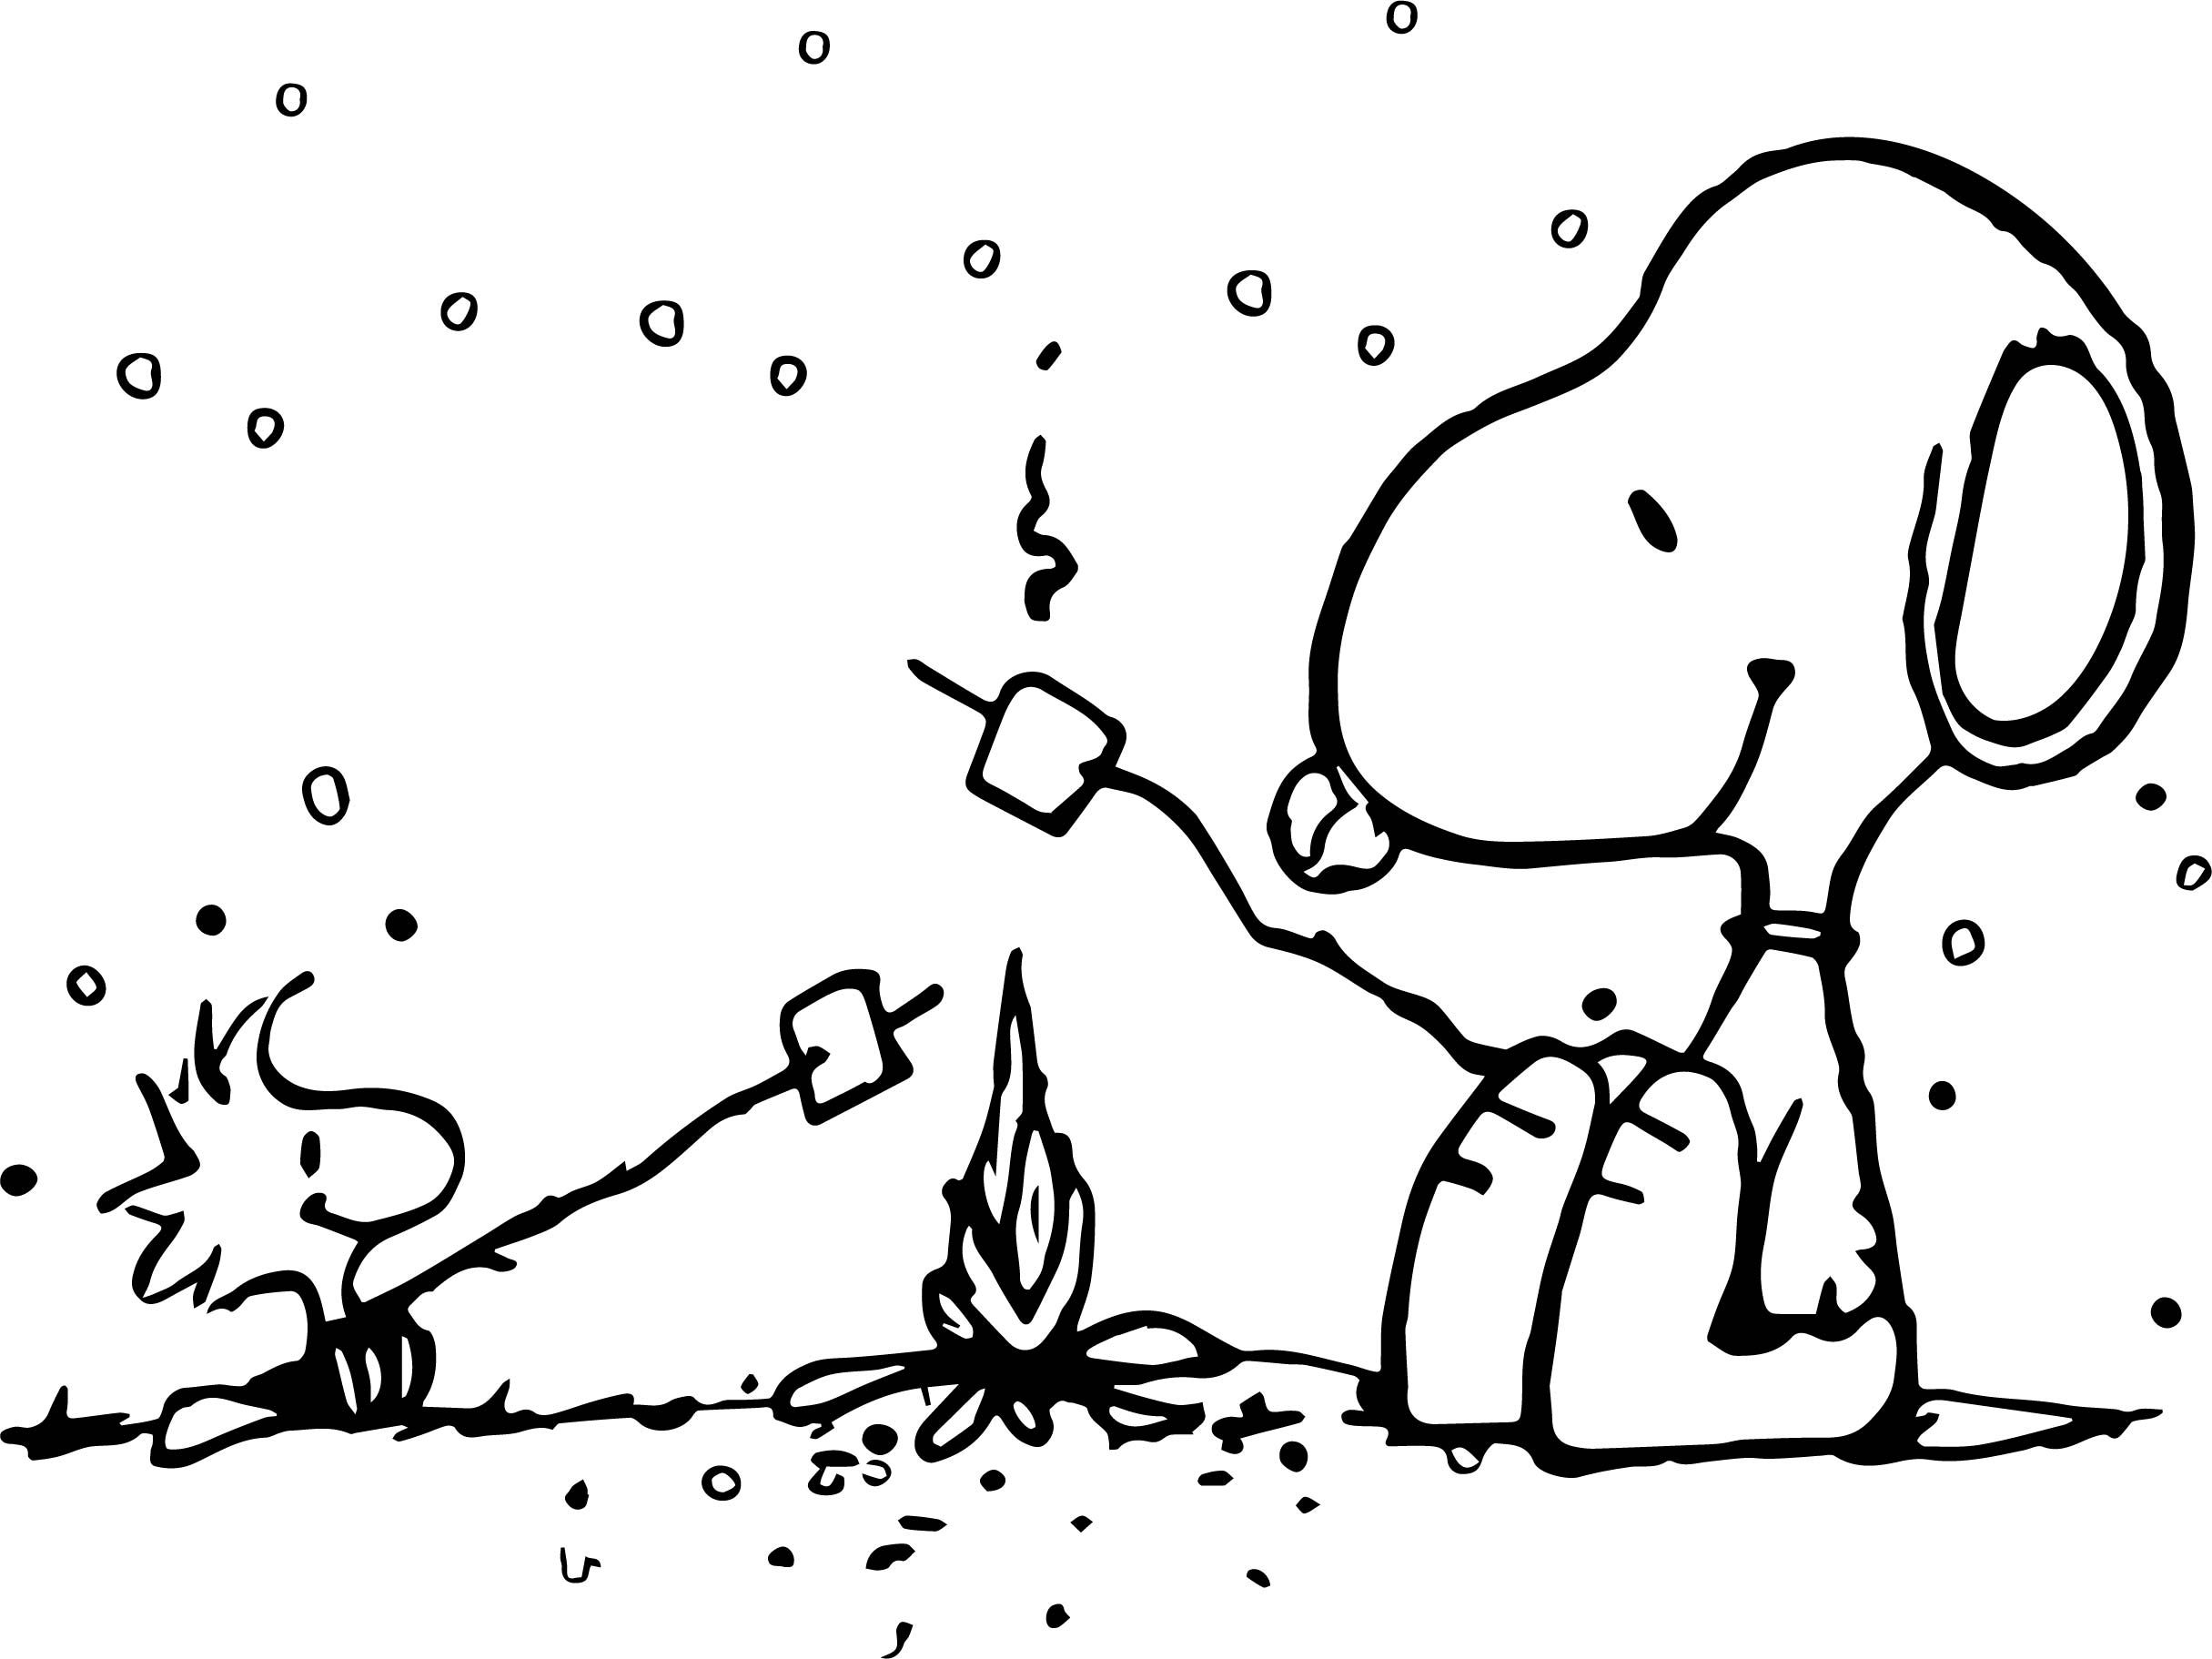 Awesome Snoopy And Woodstock Camping Coloring Page Snoopy Coloring Pages Camping Coloring Pages Christmas Coloring Pages